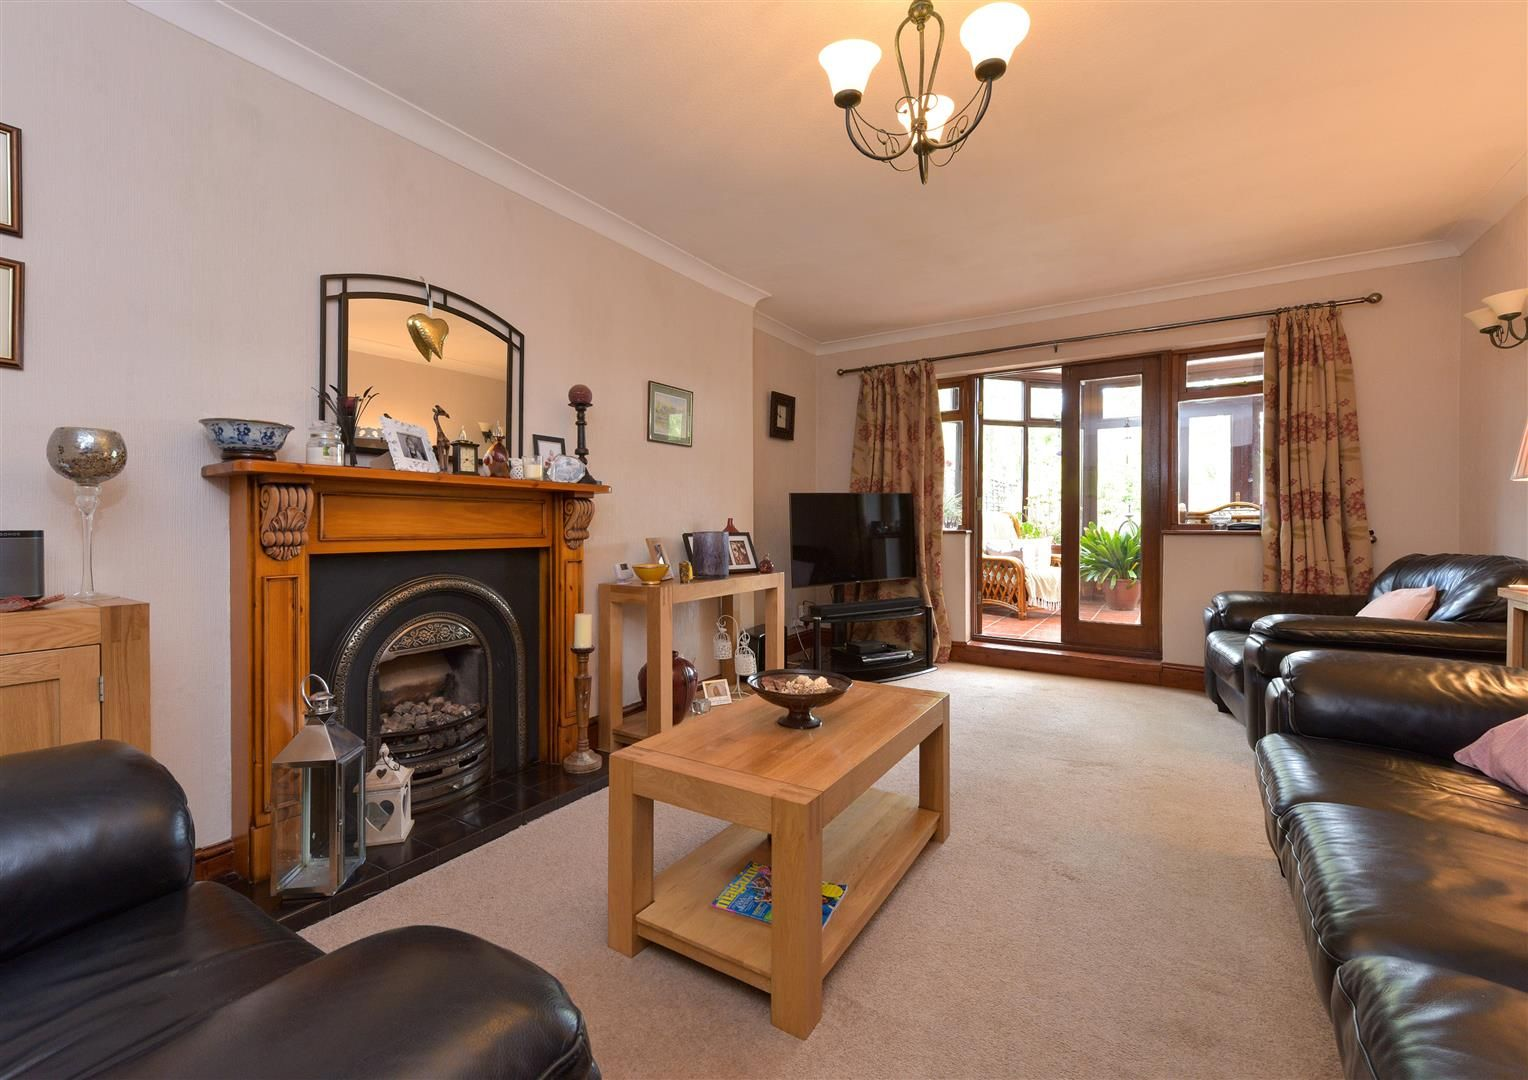 5 bed semi-detached for sale 6